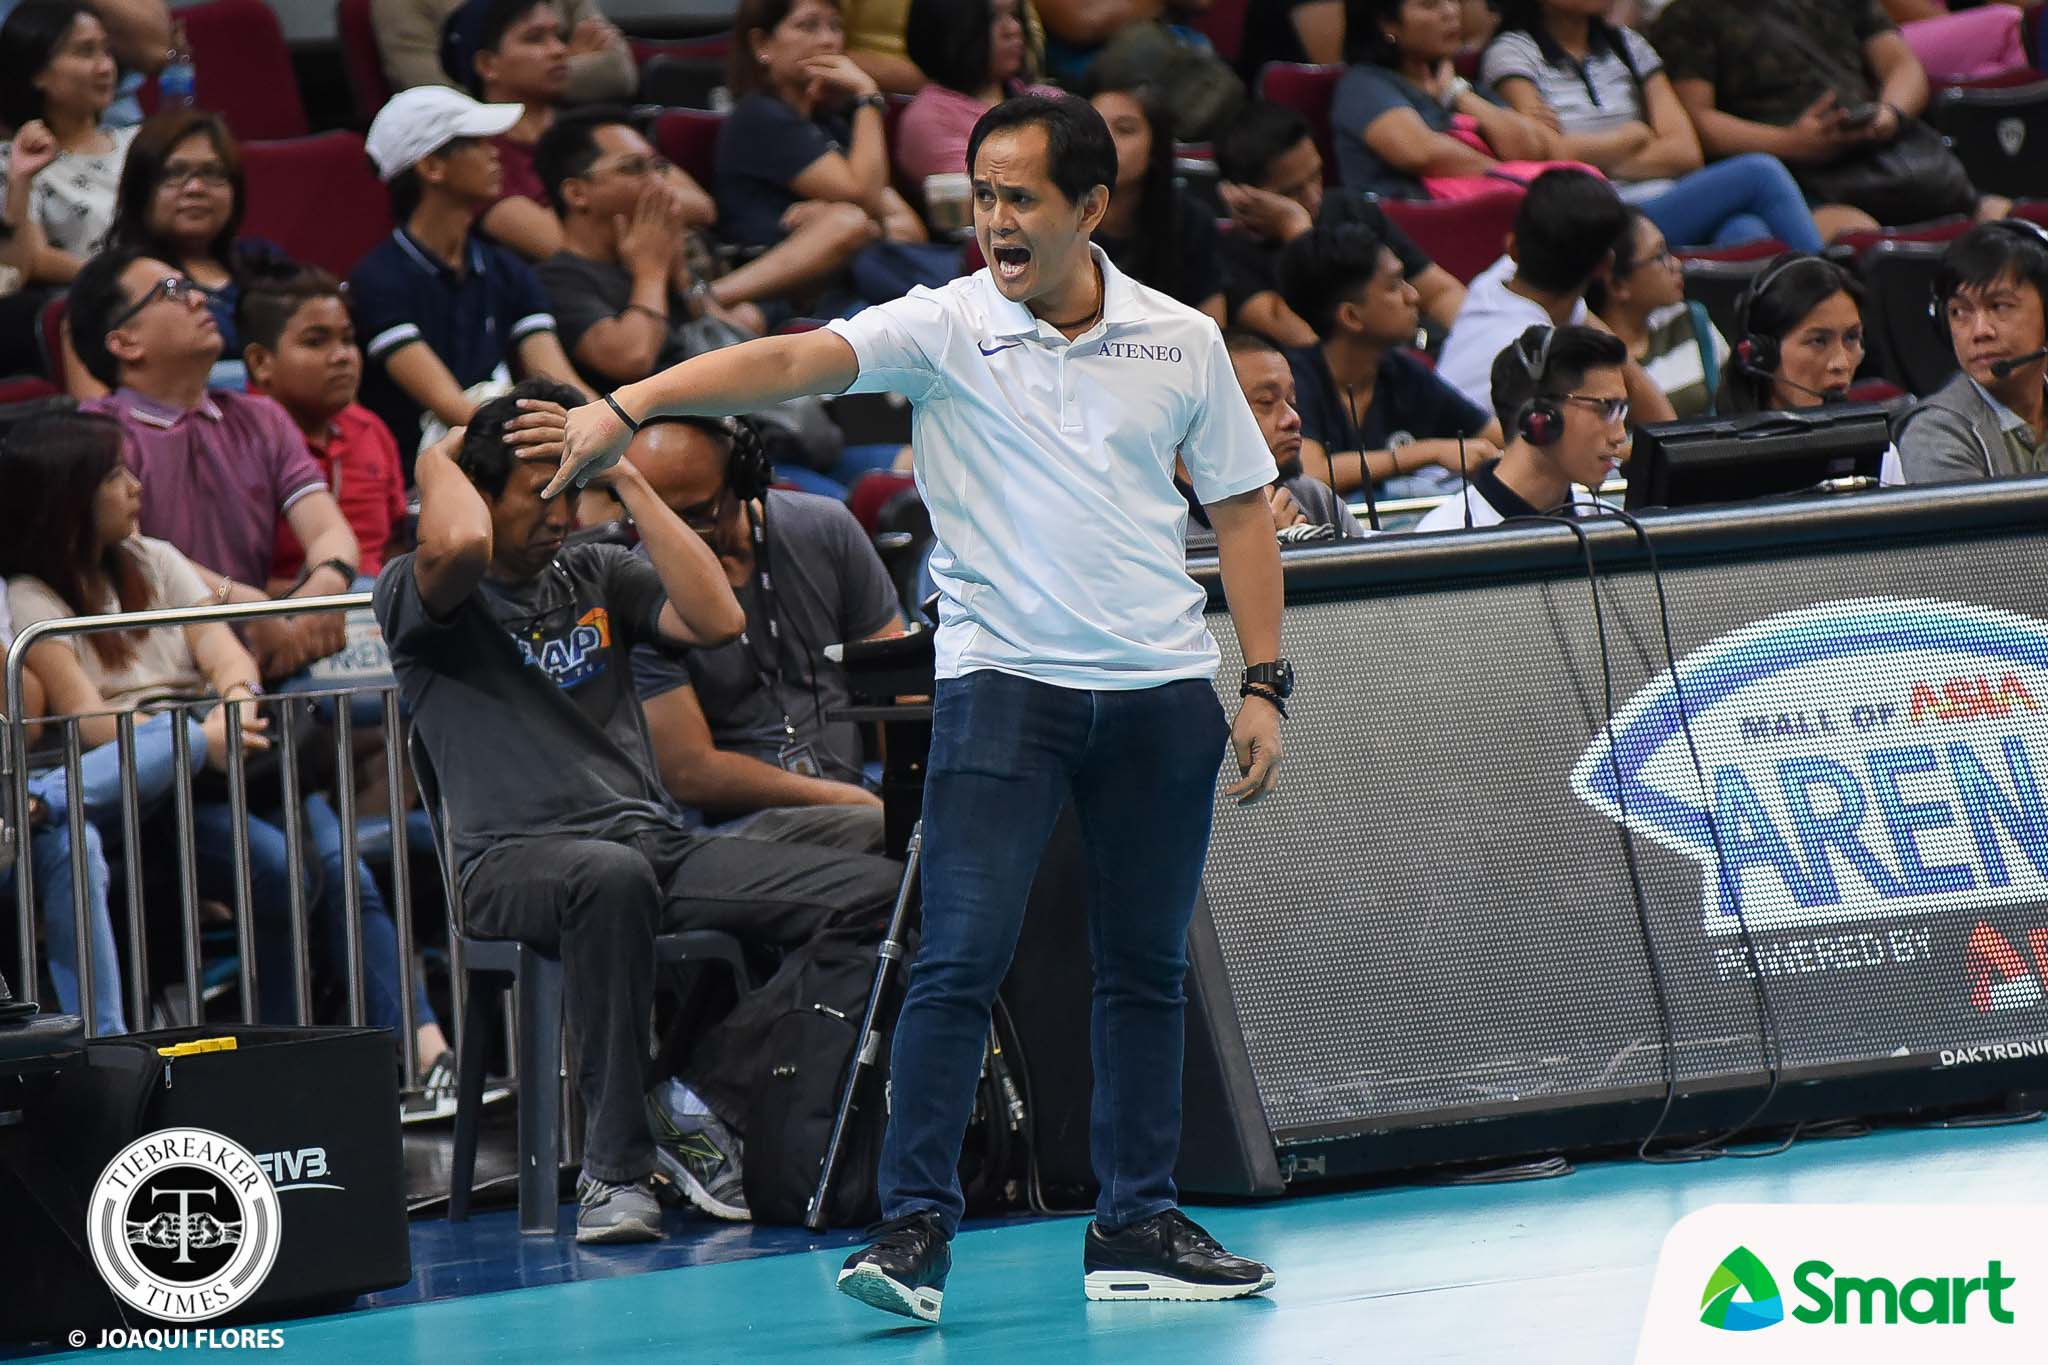 Philippine Sports News - Tiebreaker Times Oliver Almadro deals with trespasser before big NU game ADMU News UAAP Volleyball  UAAP Season 80 Men's Volleyball UAAP Season 80 Oliver Almadro Ateneo Men's Volleyball